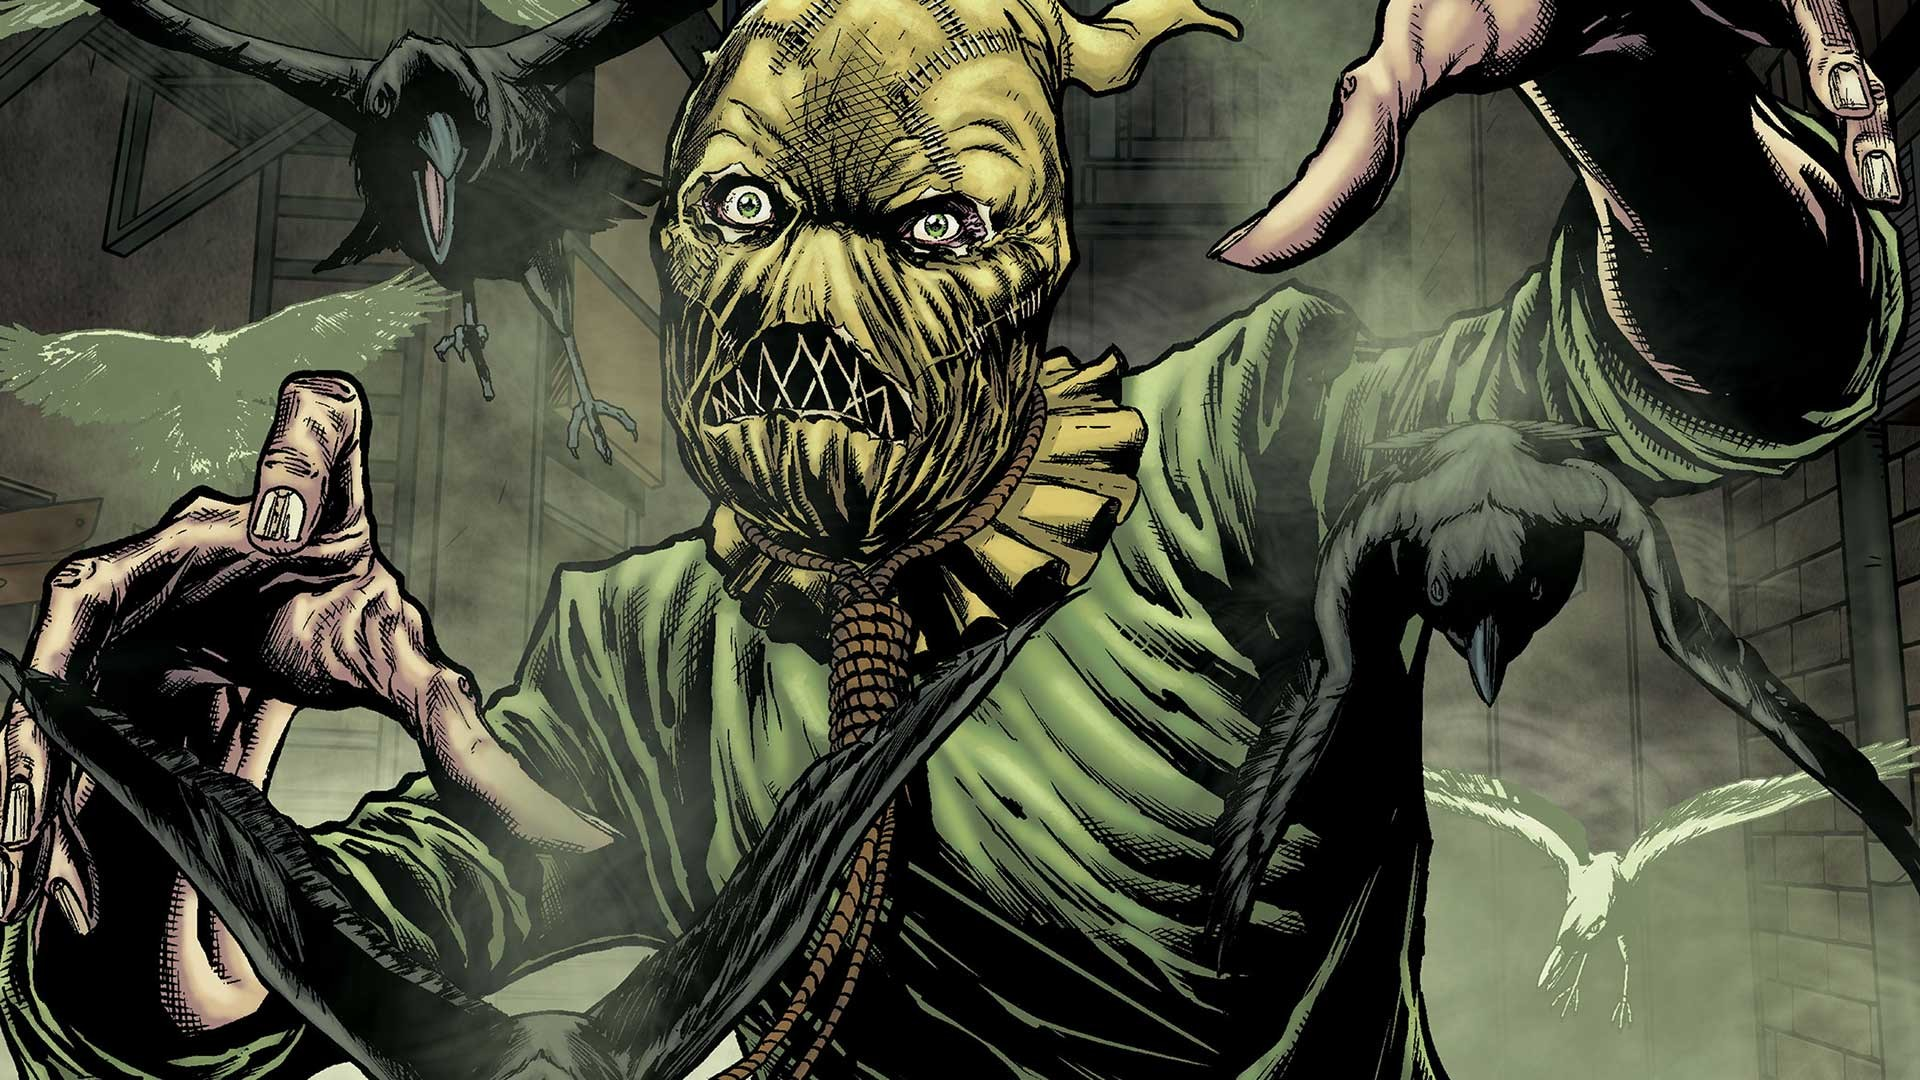 1920x1080 Scarecrow develops your deepest darkest fears, and make them become a  reality with his hallucinogenic gas. This often causes trouble for Batman  when trying ...